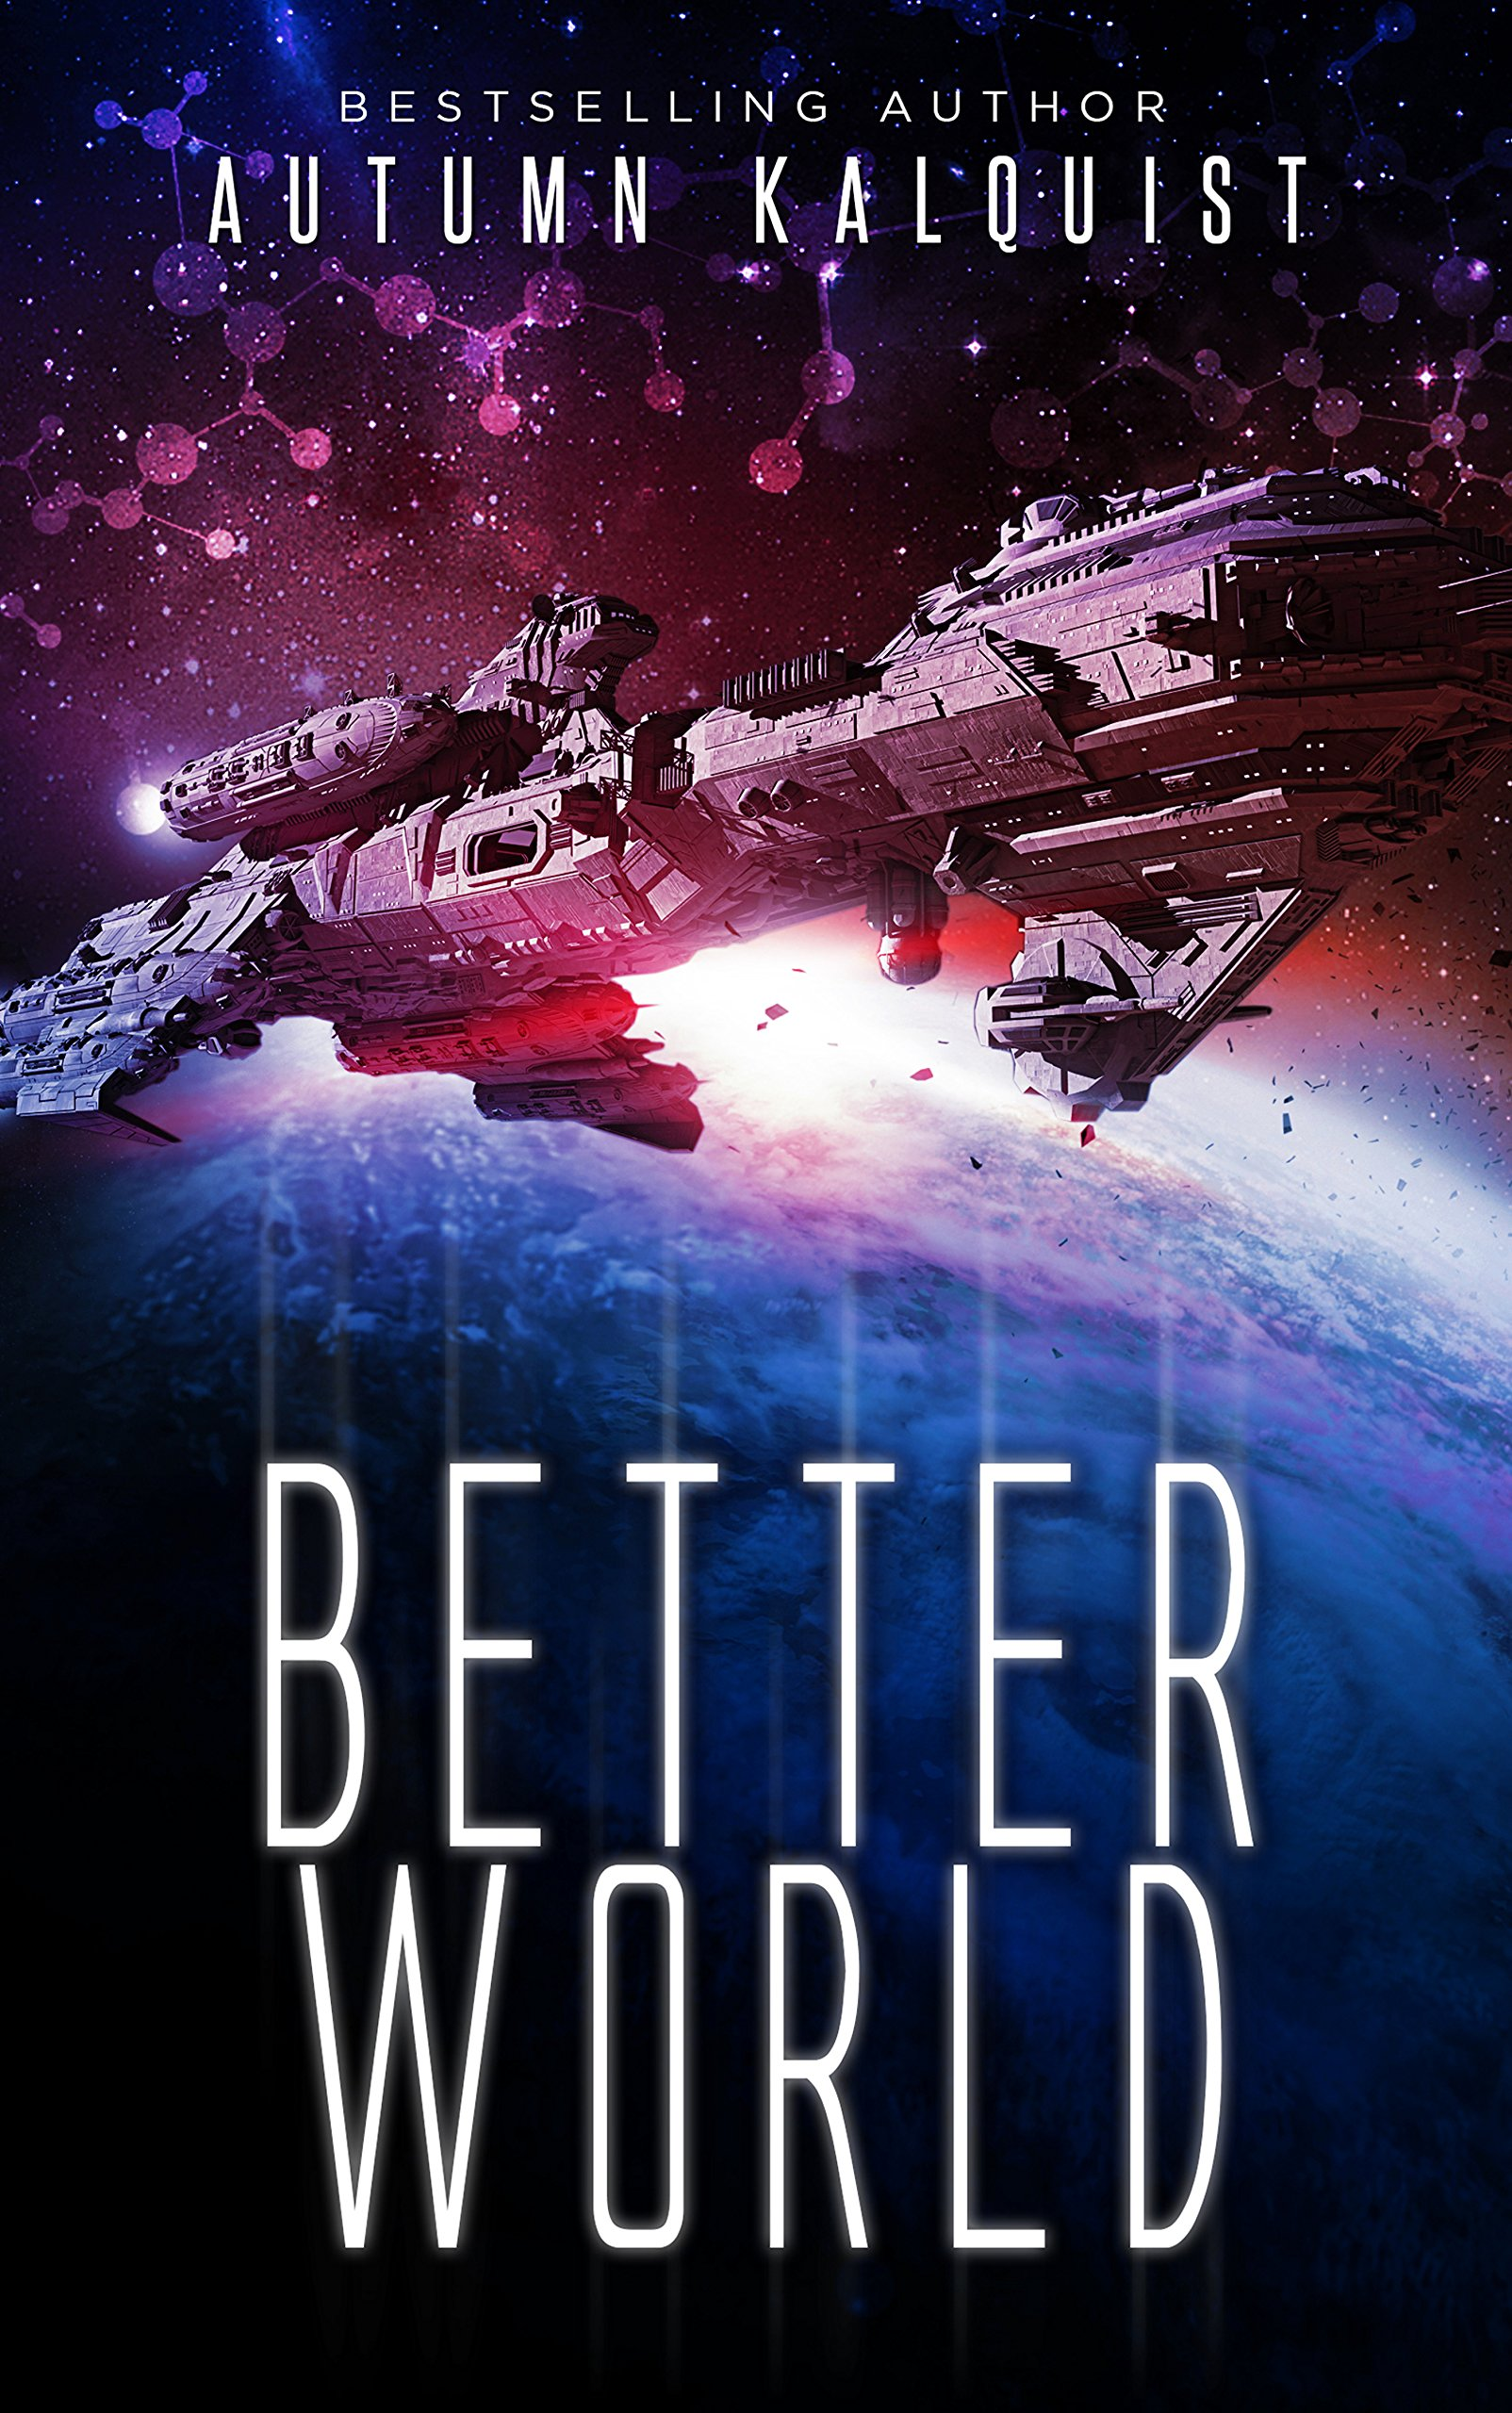 """Better World"" by Autumn Kalquist."